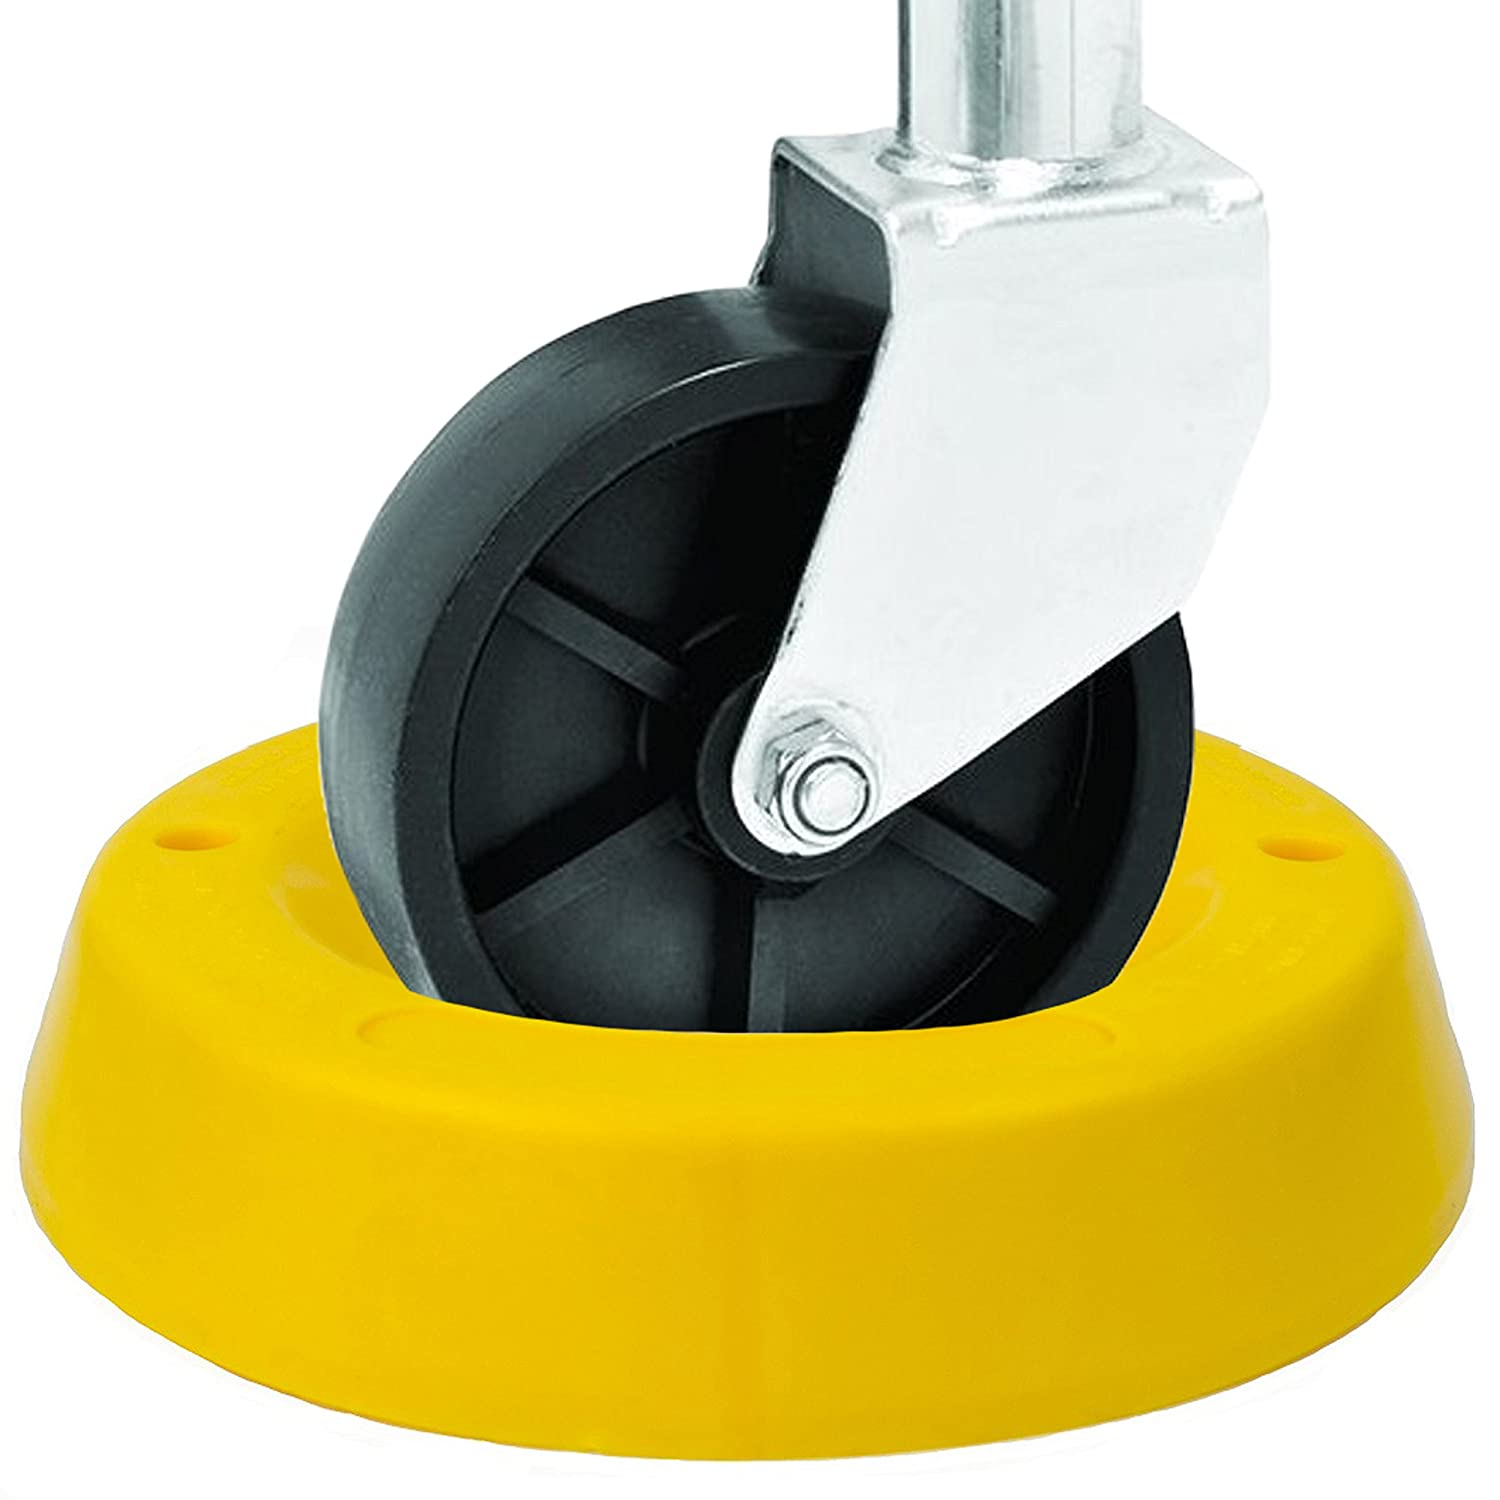 High Visibility Yellow BUNKERWALL Trailer Tongue Jack Wheel Dock for Travel Trailer Jack Caster